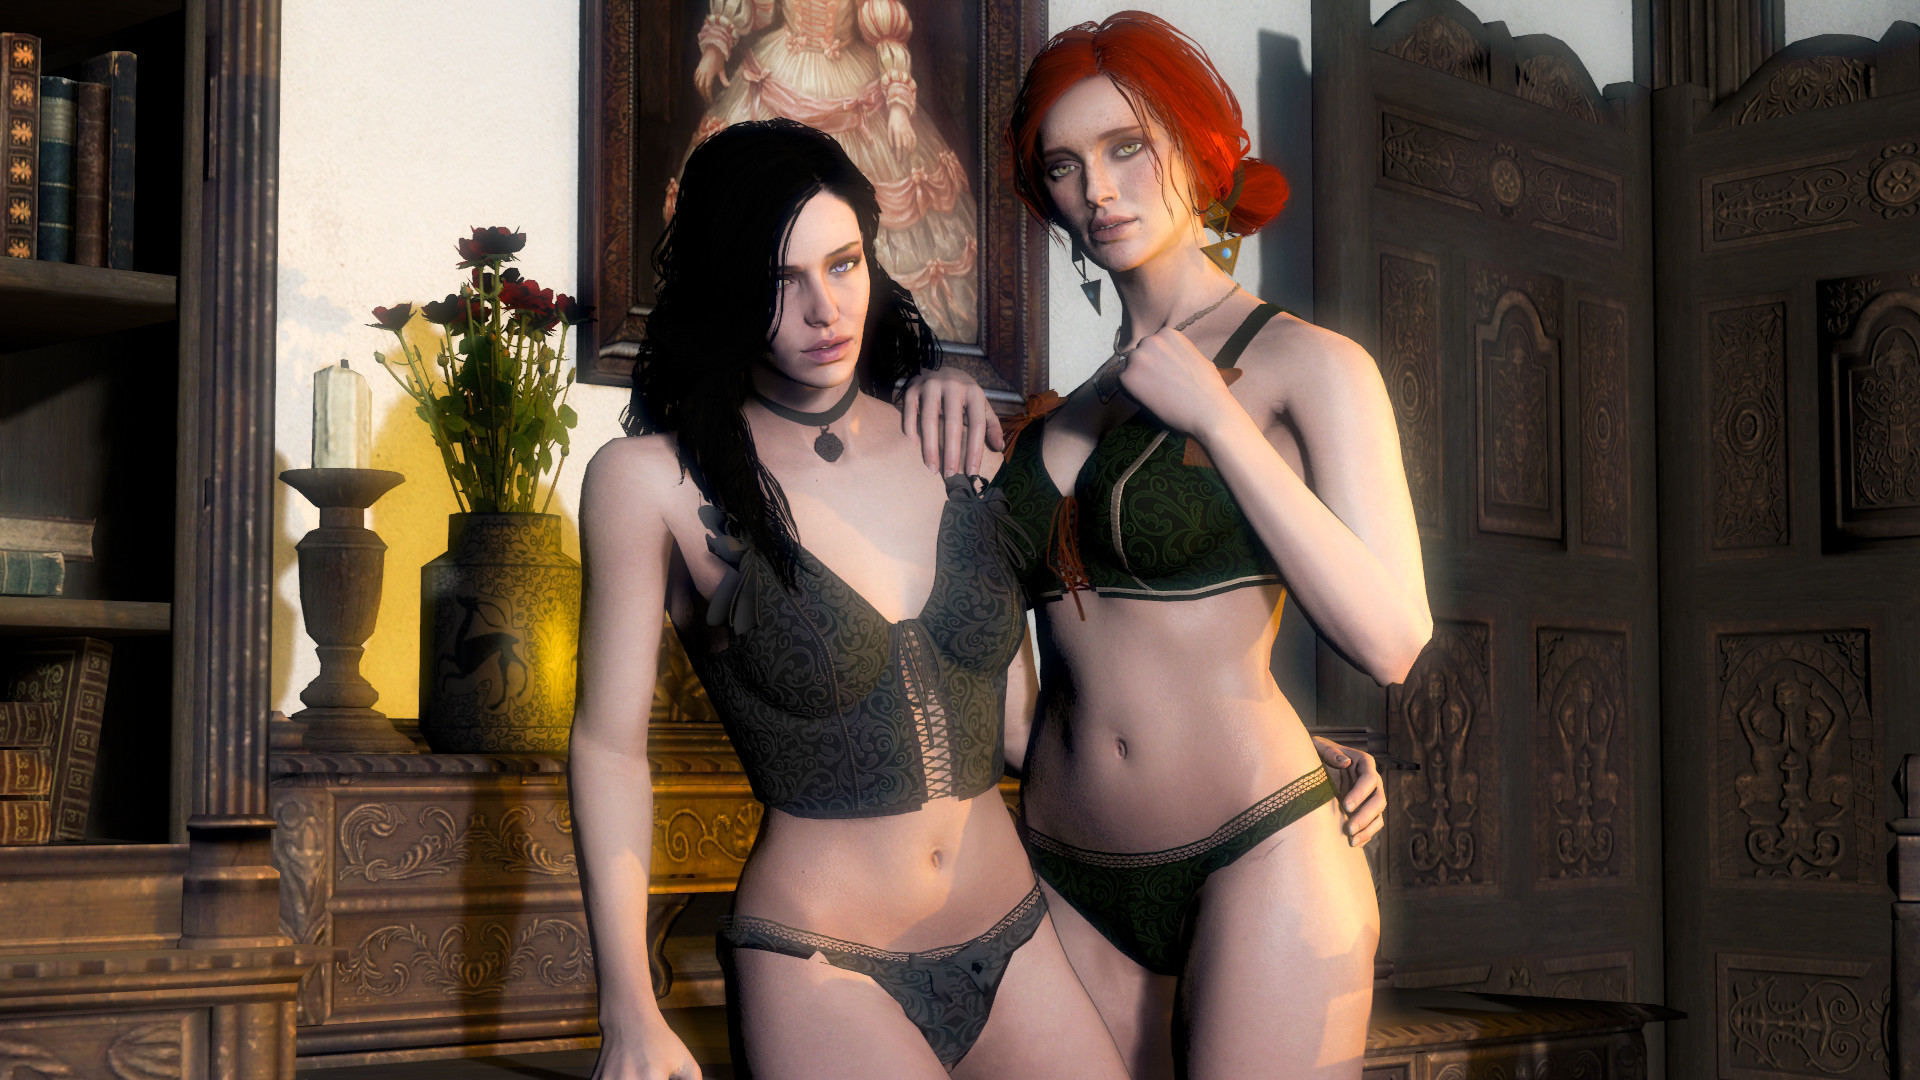 Yennefer and triss by Santiago5300 Yennefer and triss by Santiago5300